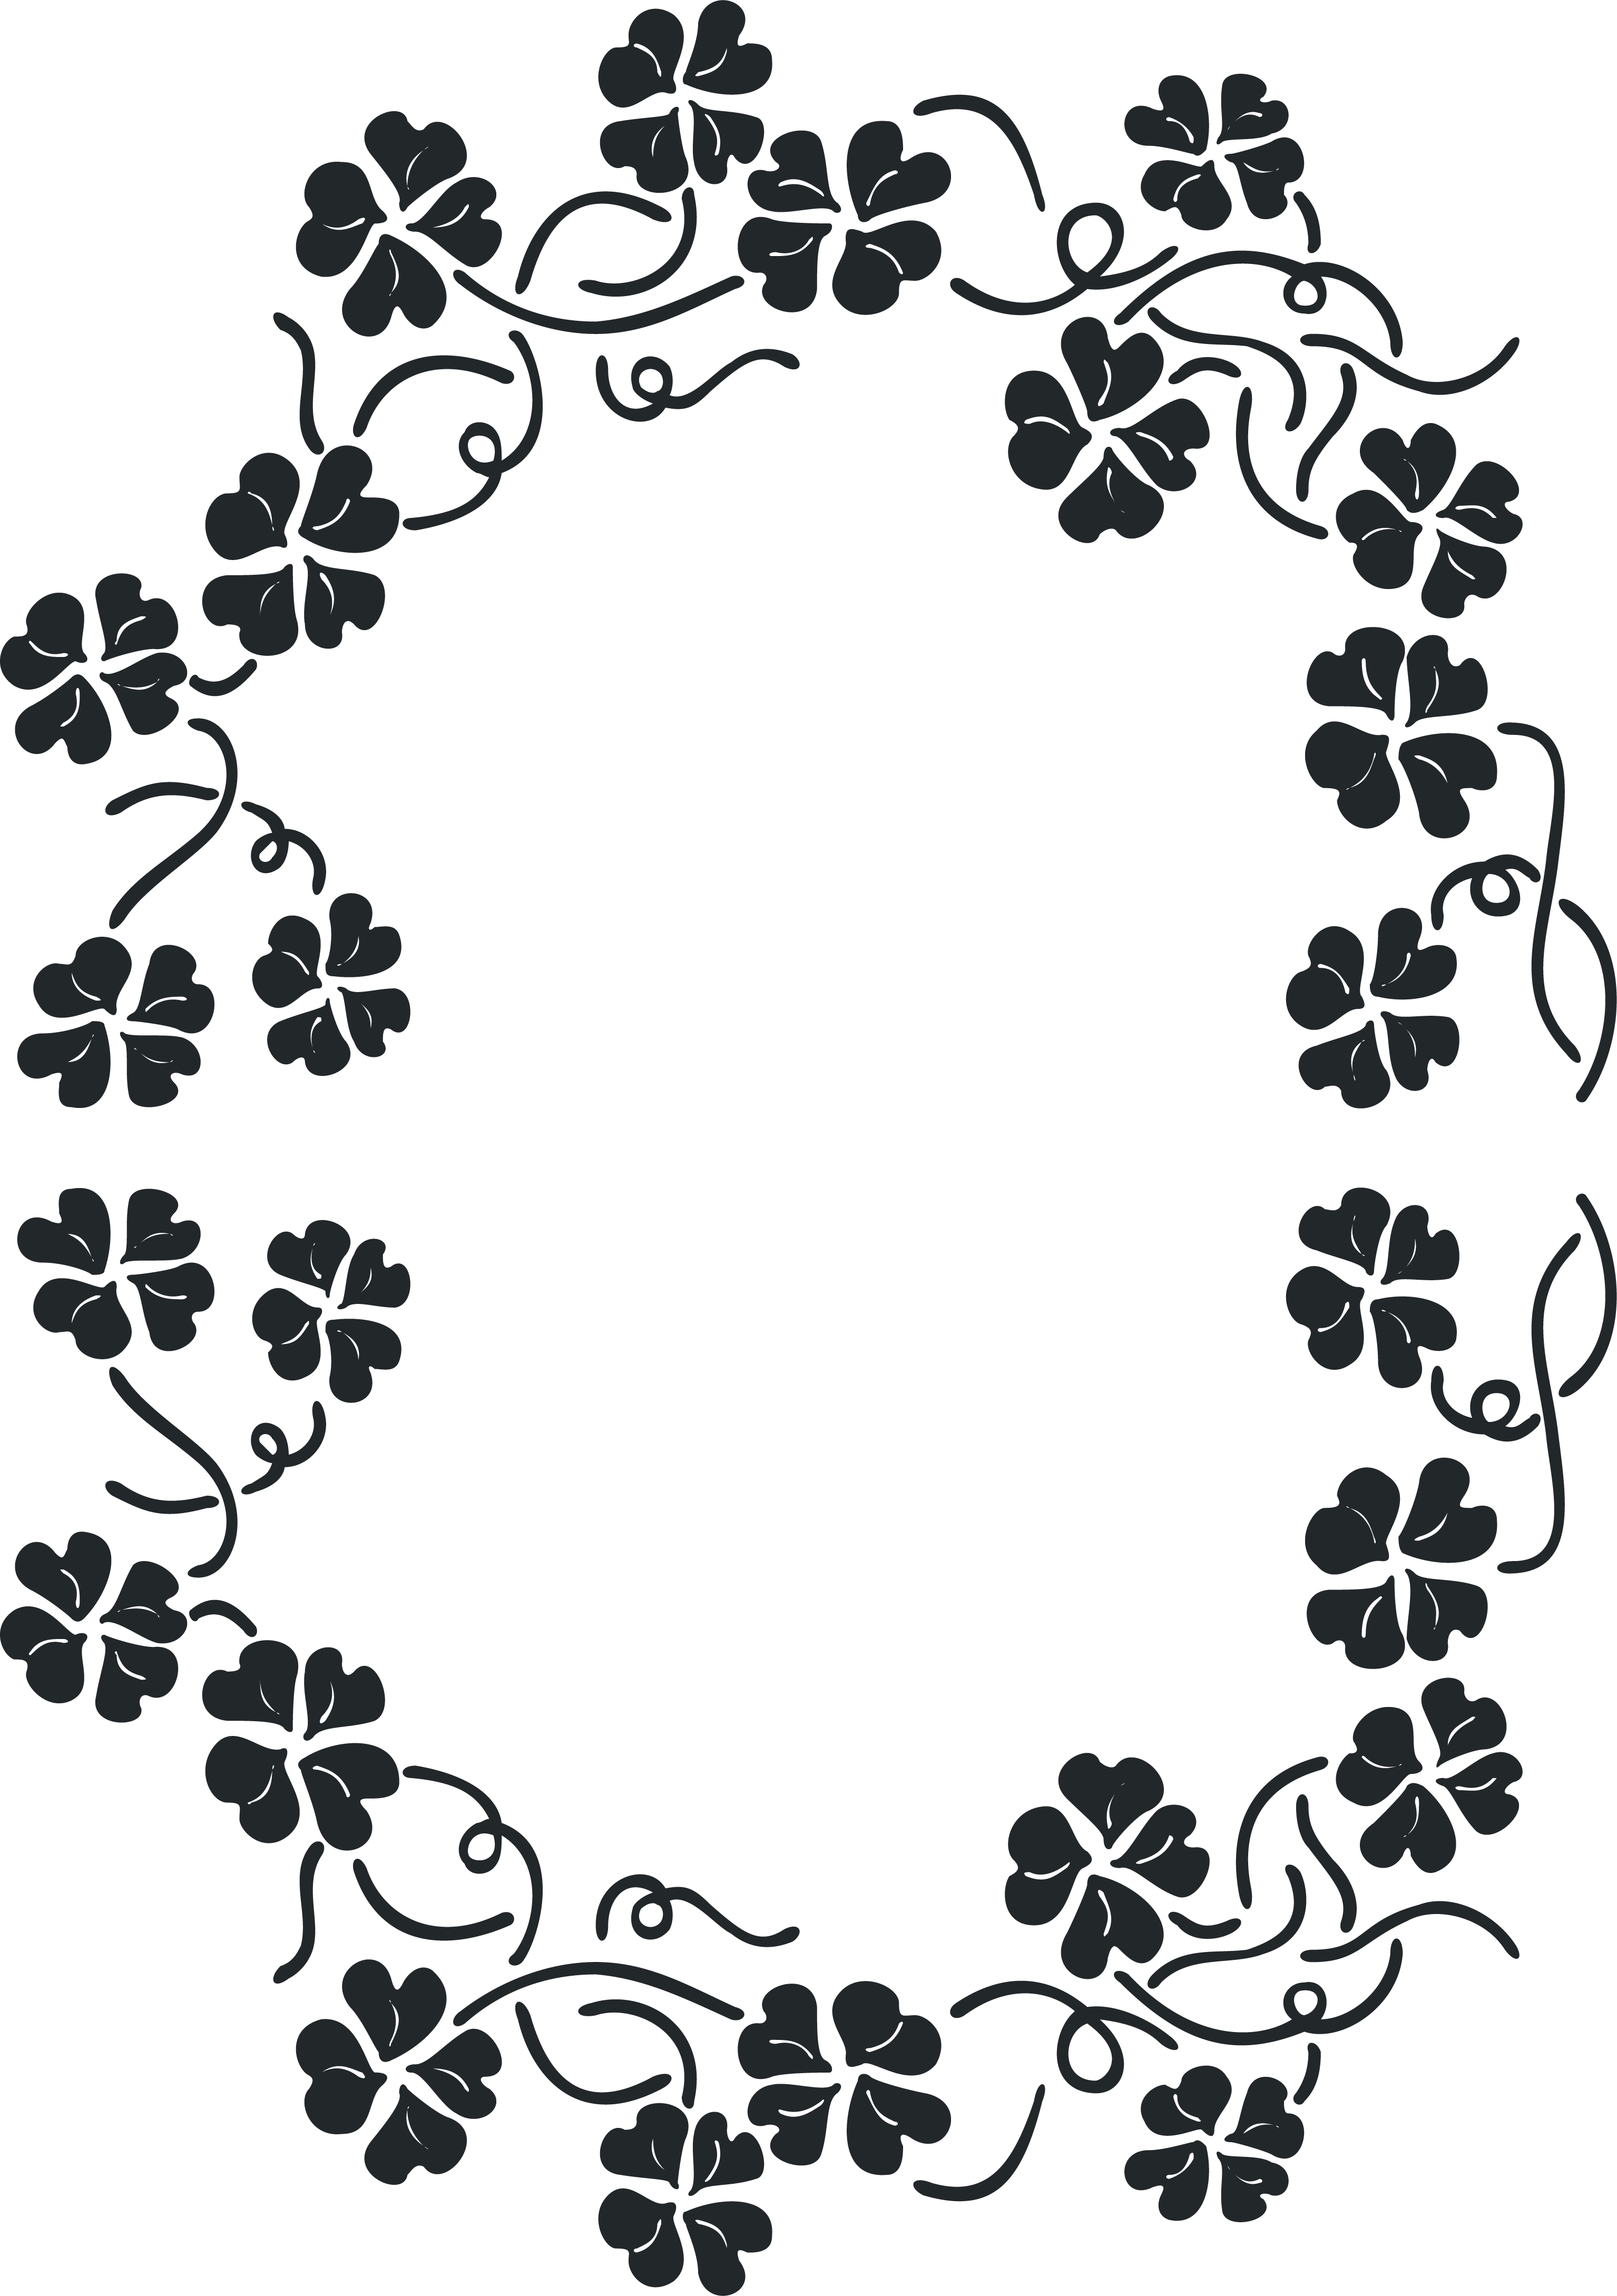 Circle decorative arts drawing. Lace clipart black and white